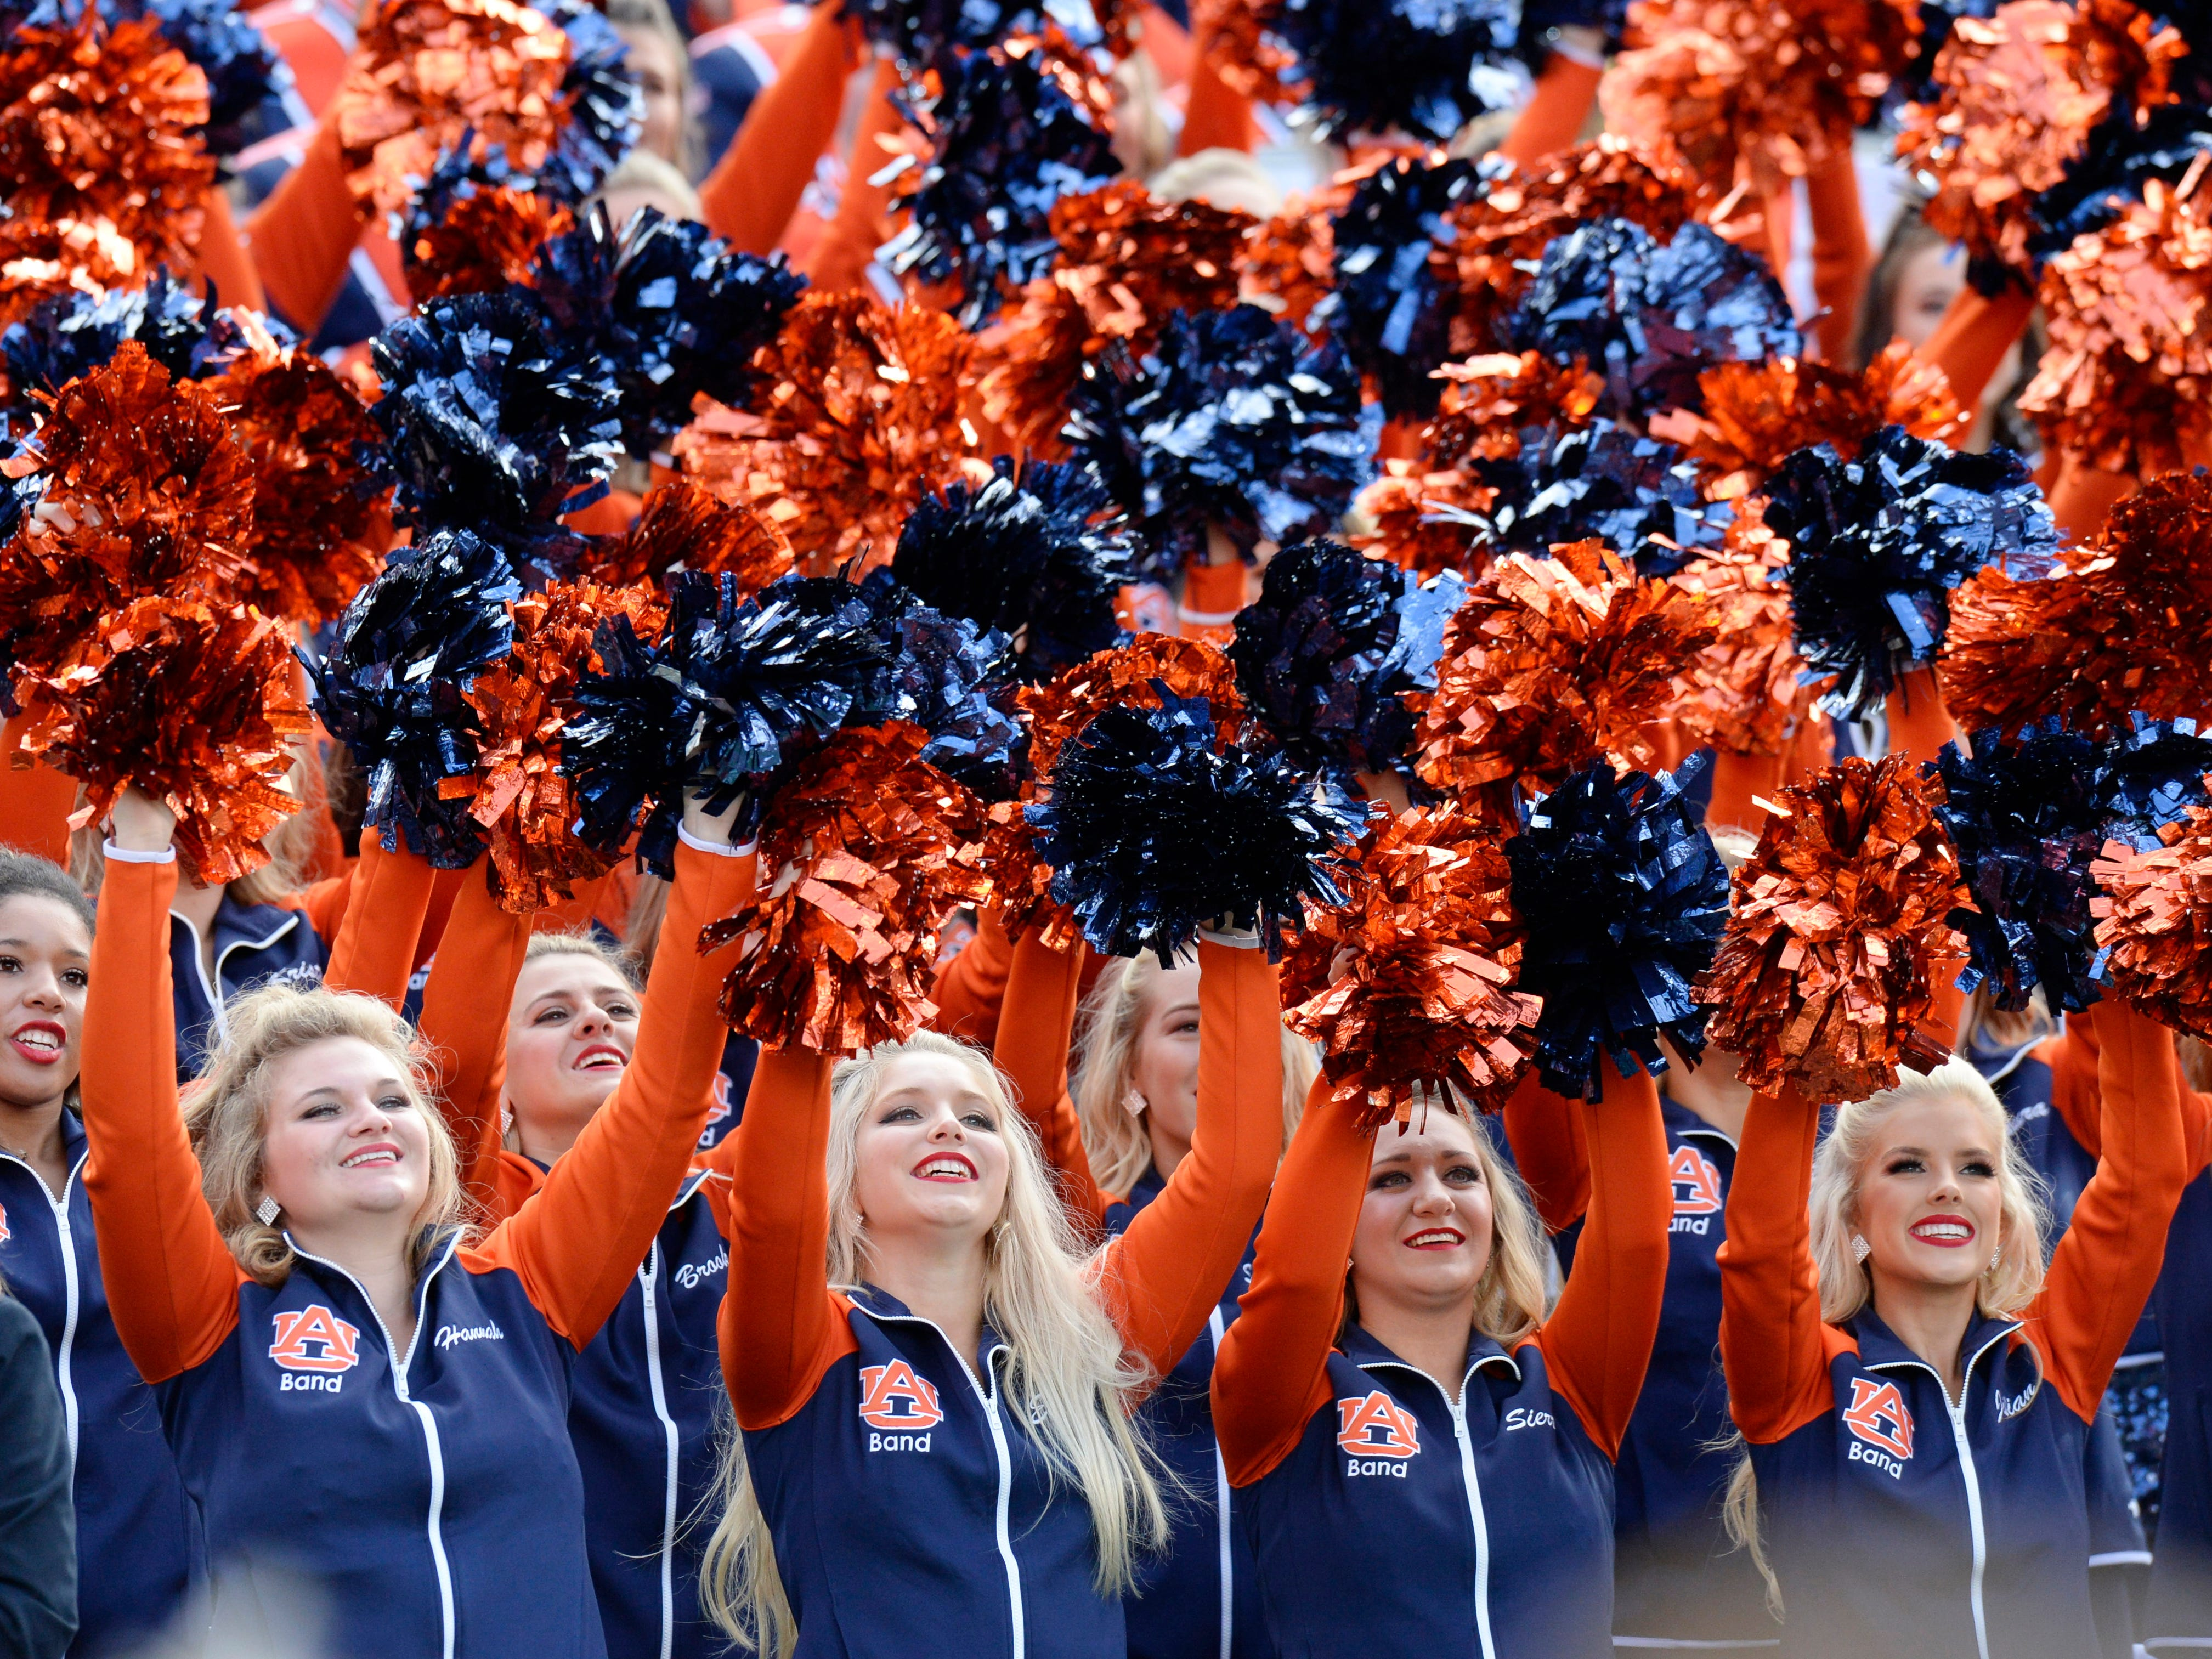 Auburn's cheerleaders lead their fans at the Music City Bowl NCAA college football game Friday, Dec. 28, 2018, at Nissan Stadium in Nashville, Tenn.